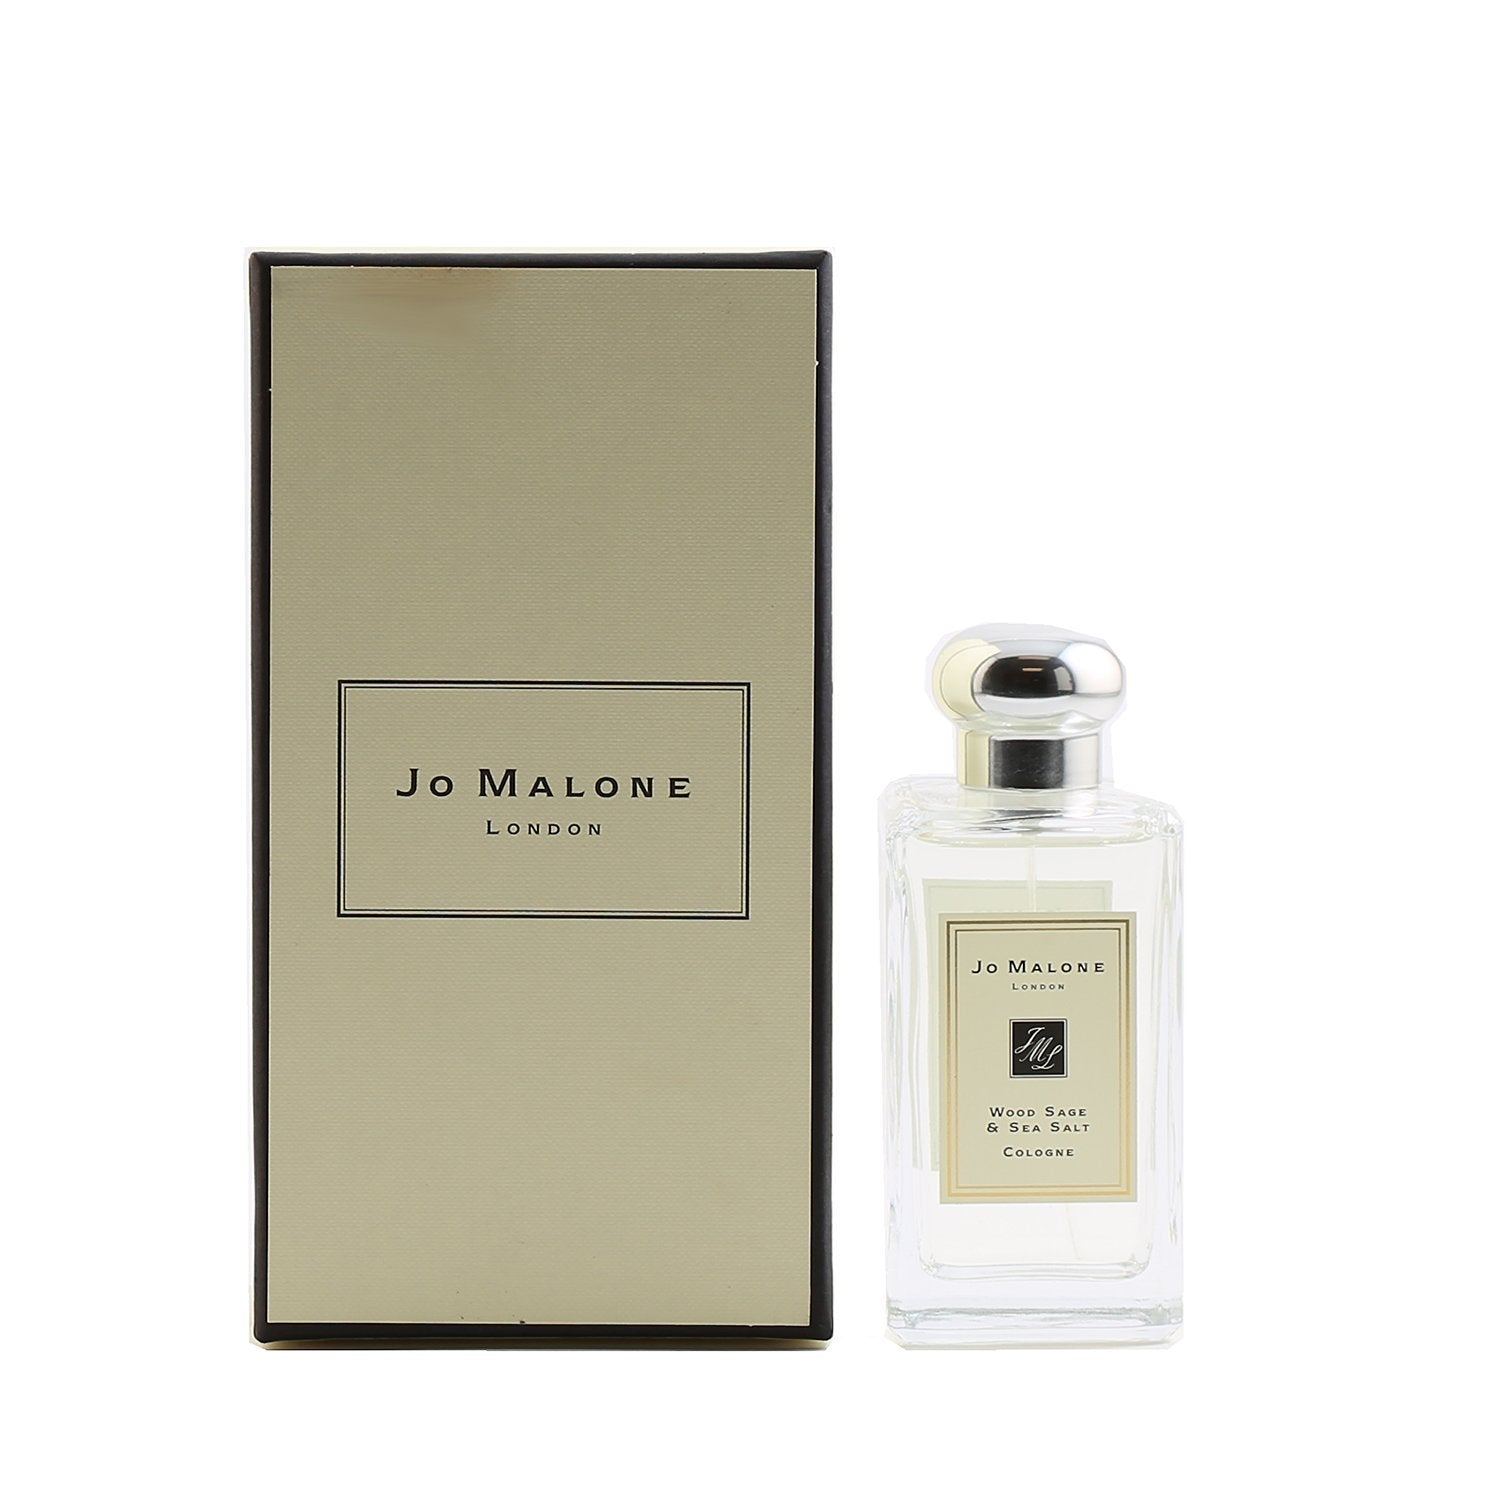 Perfume - JO MALONE WOOD SAGE & SEA SALT FOR WOMEN - COLOGNE